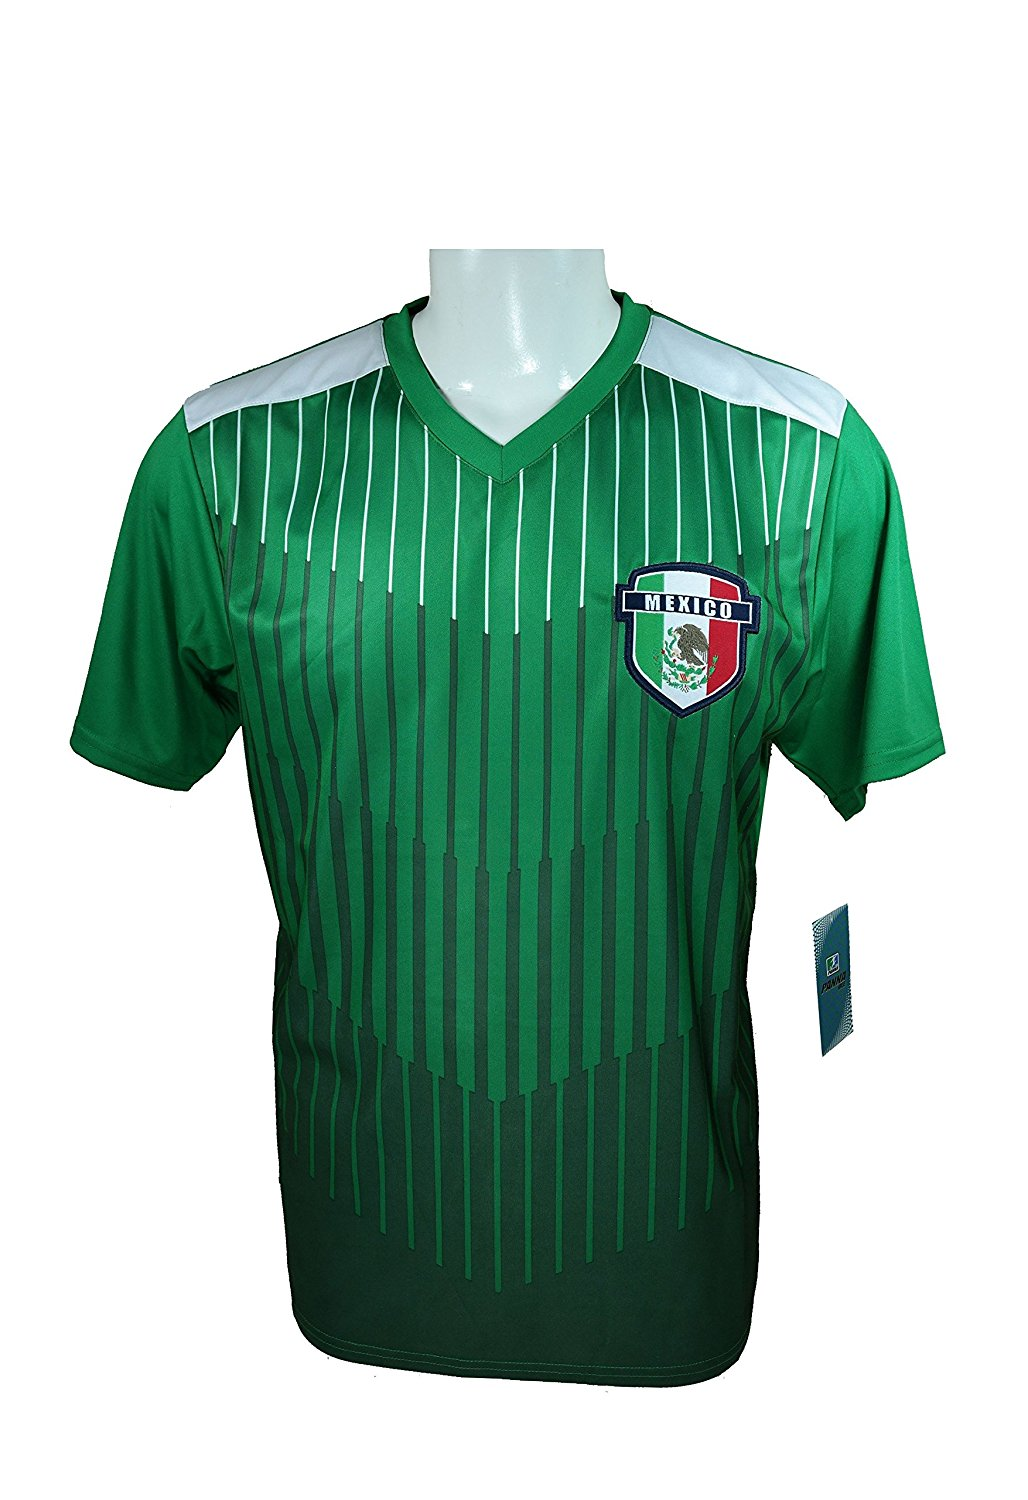 274f1545177 Get Quotations · Mexico Soccer World Cup Adult Soccer Training Performance  Jersey -P013